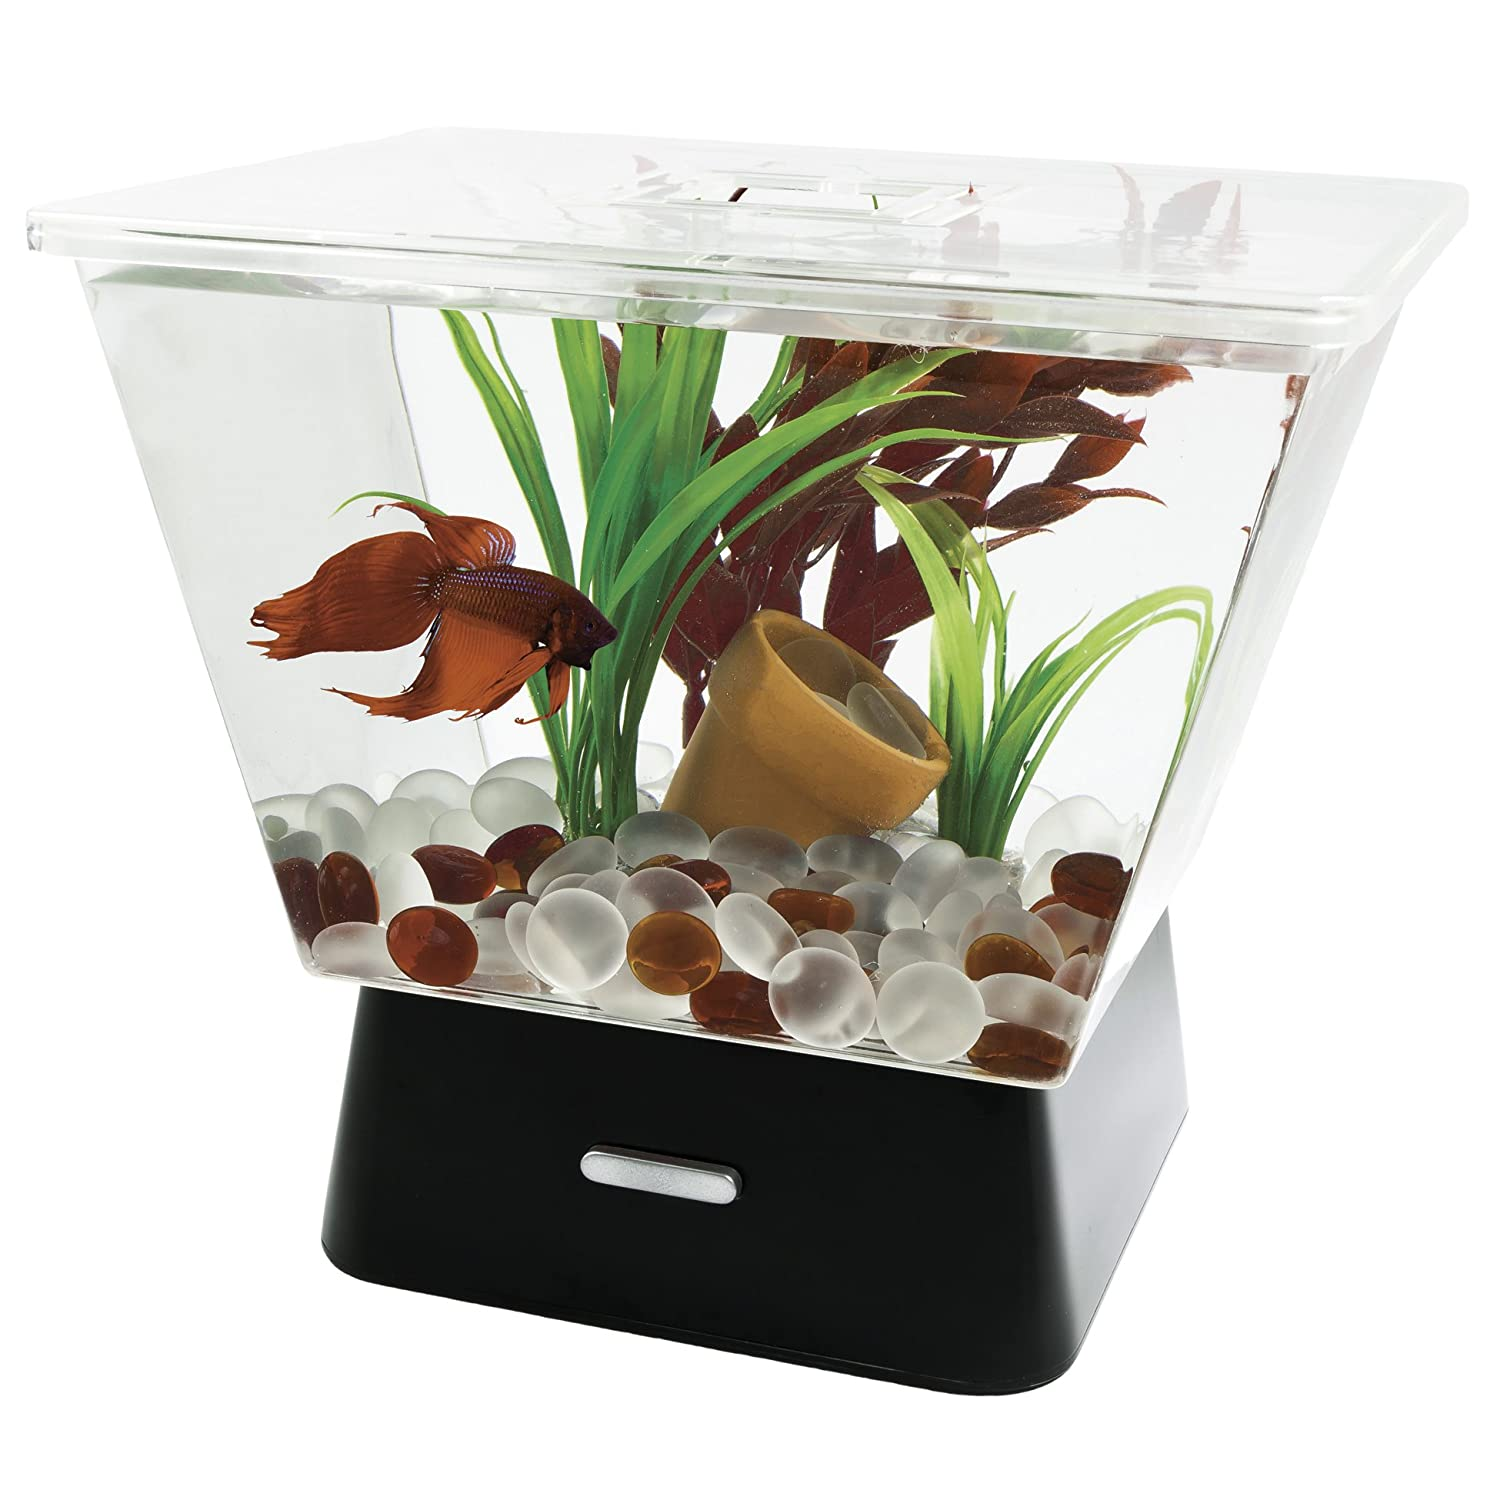 Fish for aquarium online - Buy Tetra 29050 Led Betta Tank 1 Gallon Online At Low Prices In India Amazon In